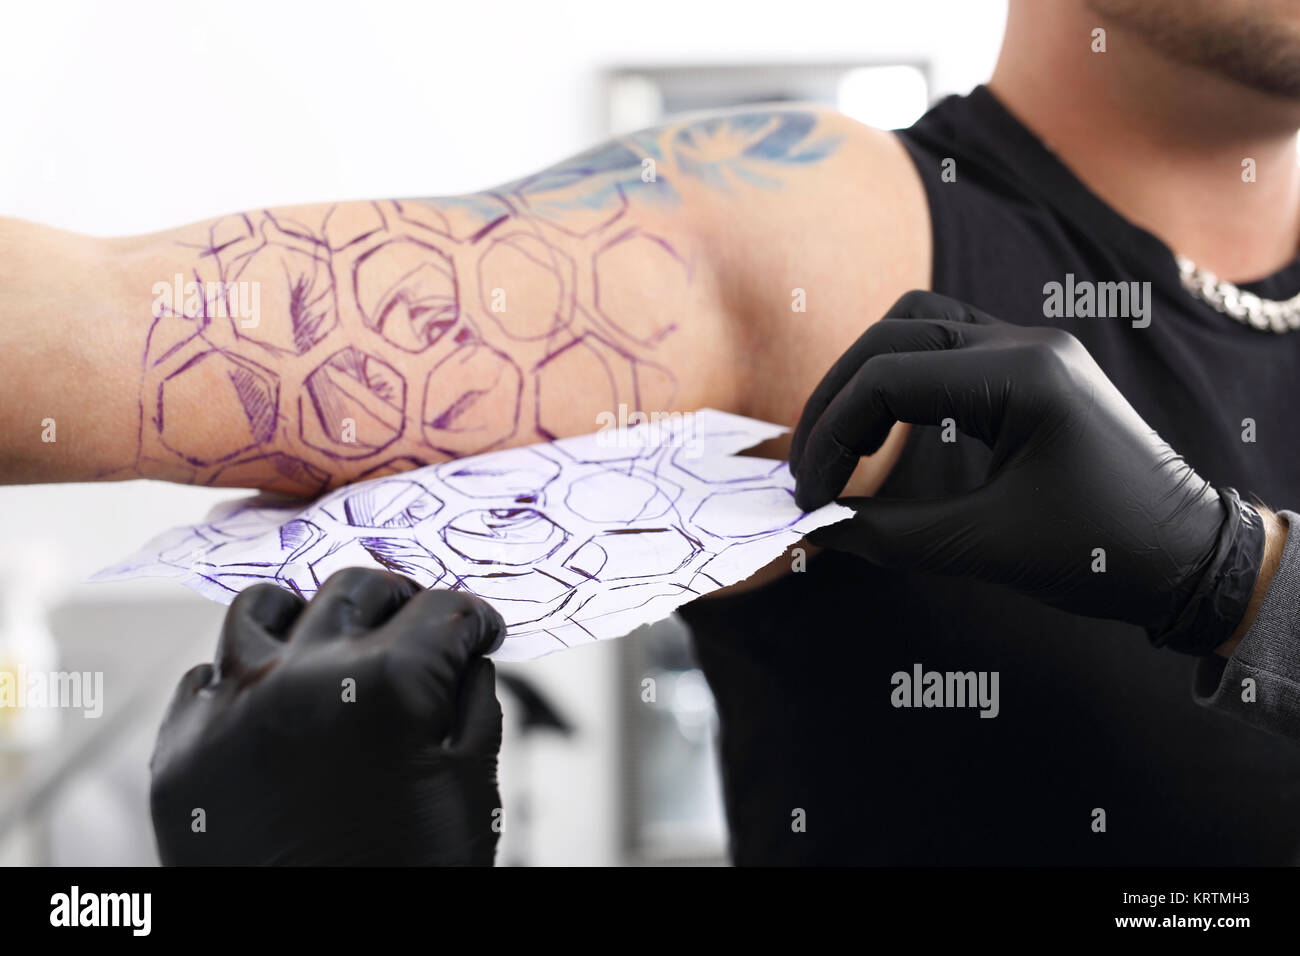 how is a tattoo? creating a tattoo in a tattoo parlor. Stock Photo